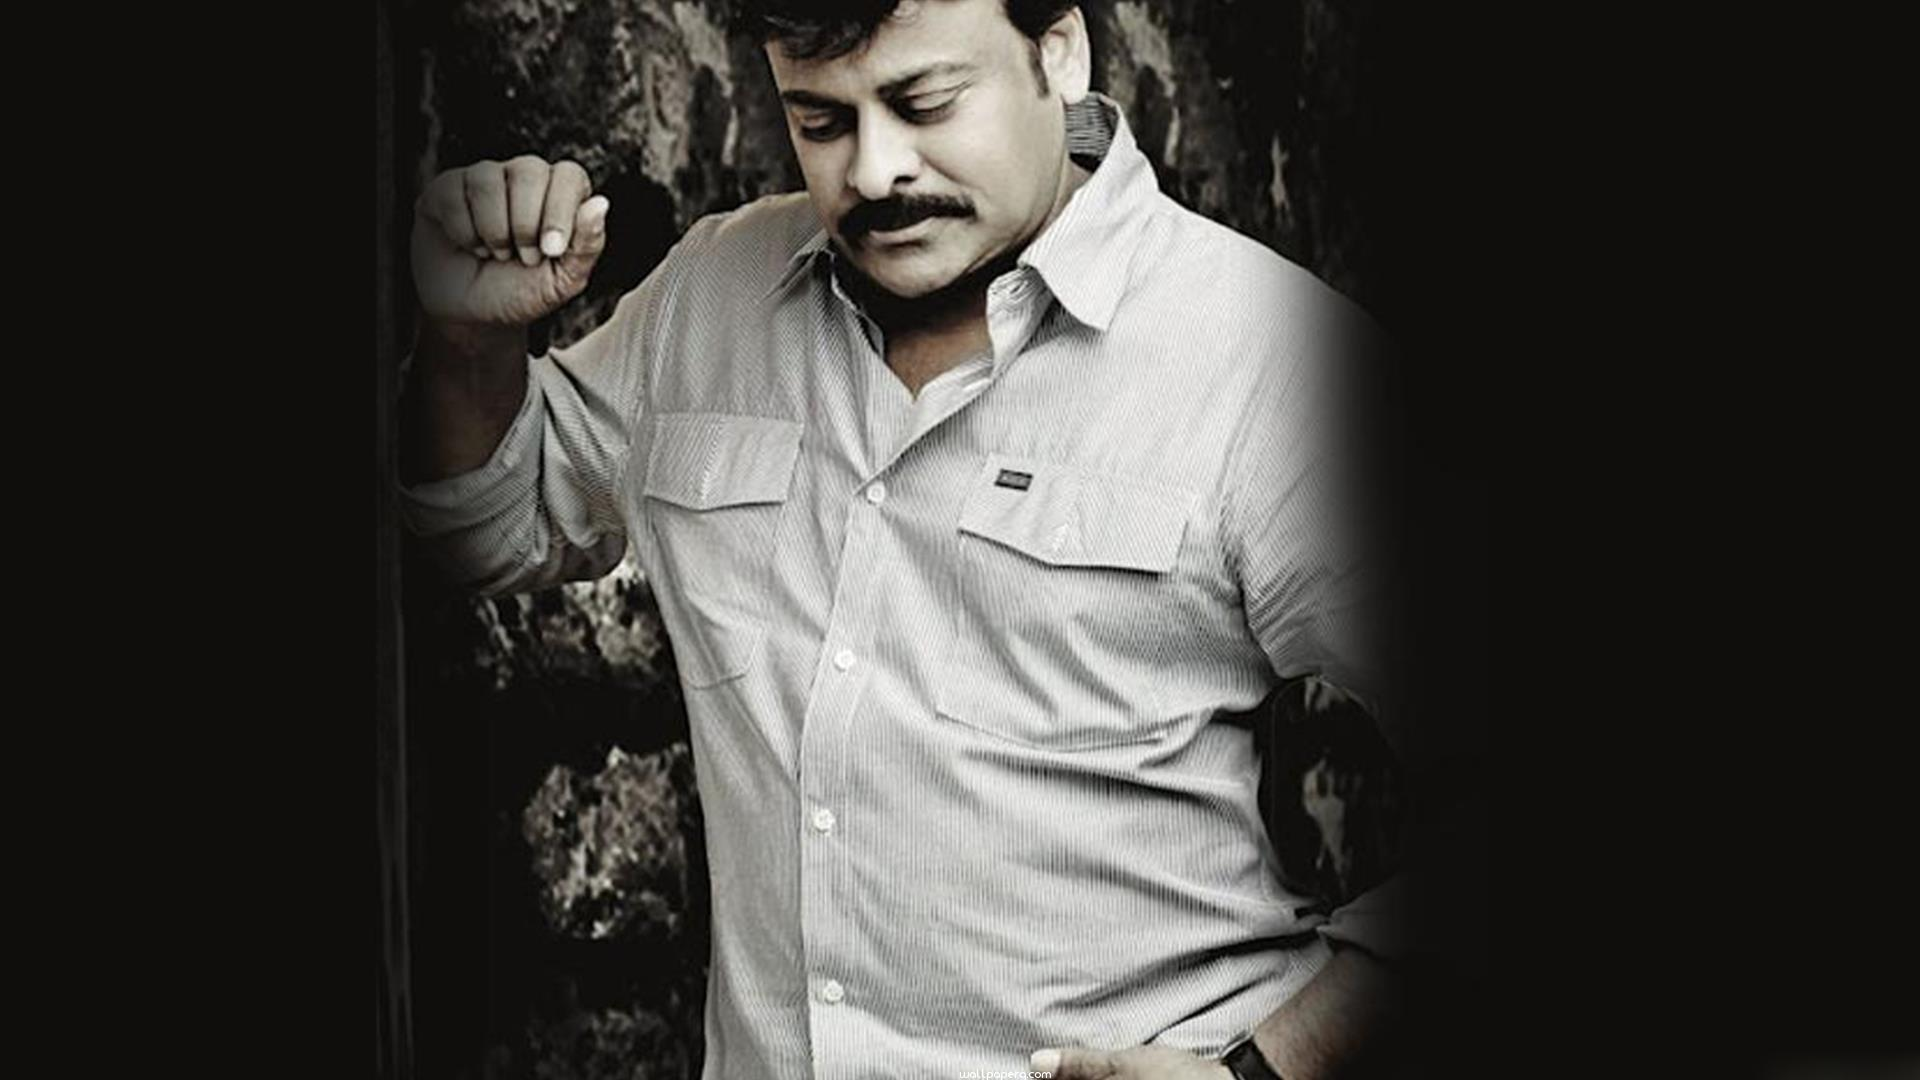 download chiranjeevi hd wallpaper for mobile laptop south indian actress and actresses for your mobile cell phone wallpaperg